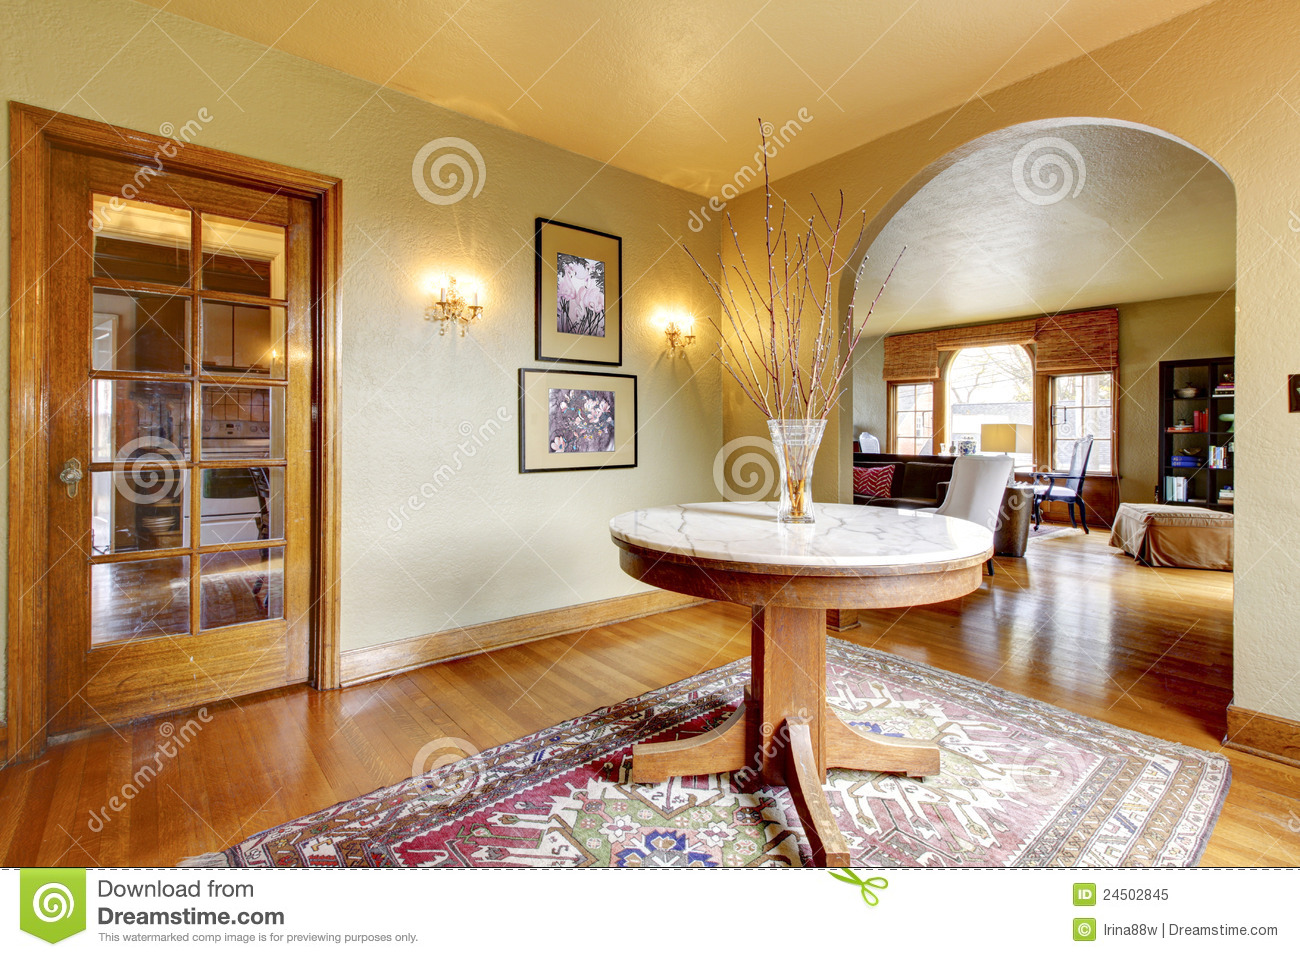 Download Luxury Entrance Home Interior With Round Table. Stock Image    Image Of Living,